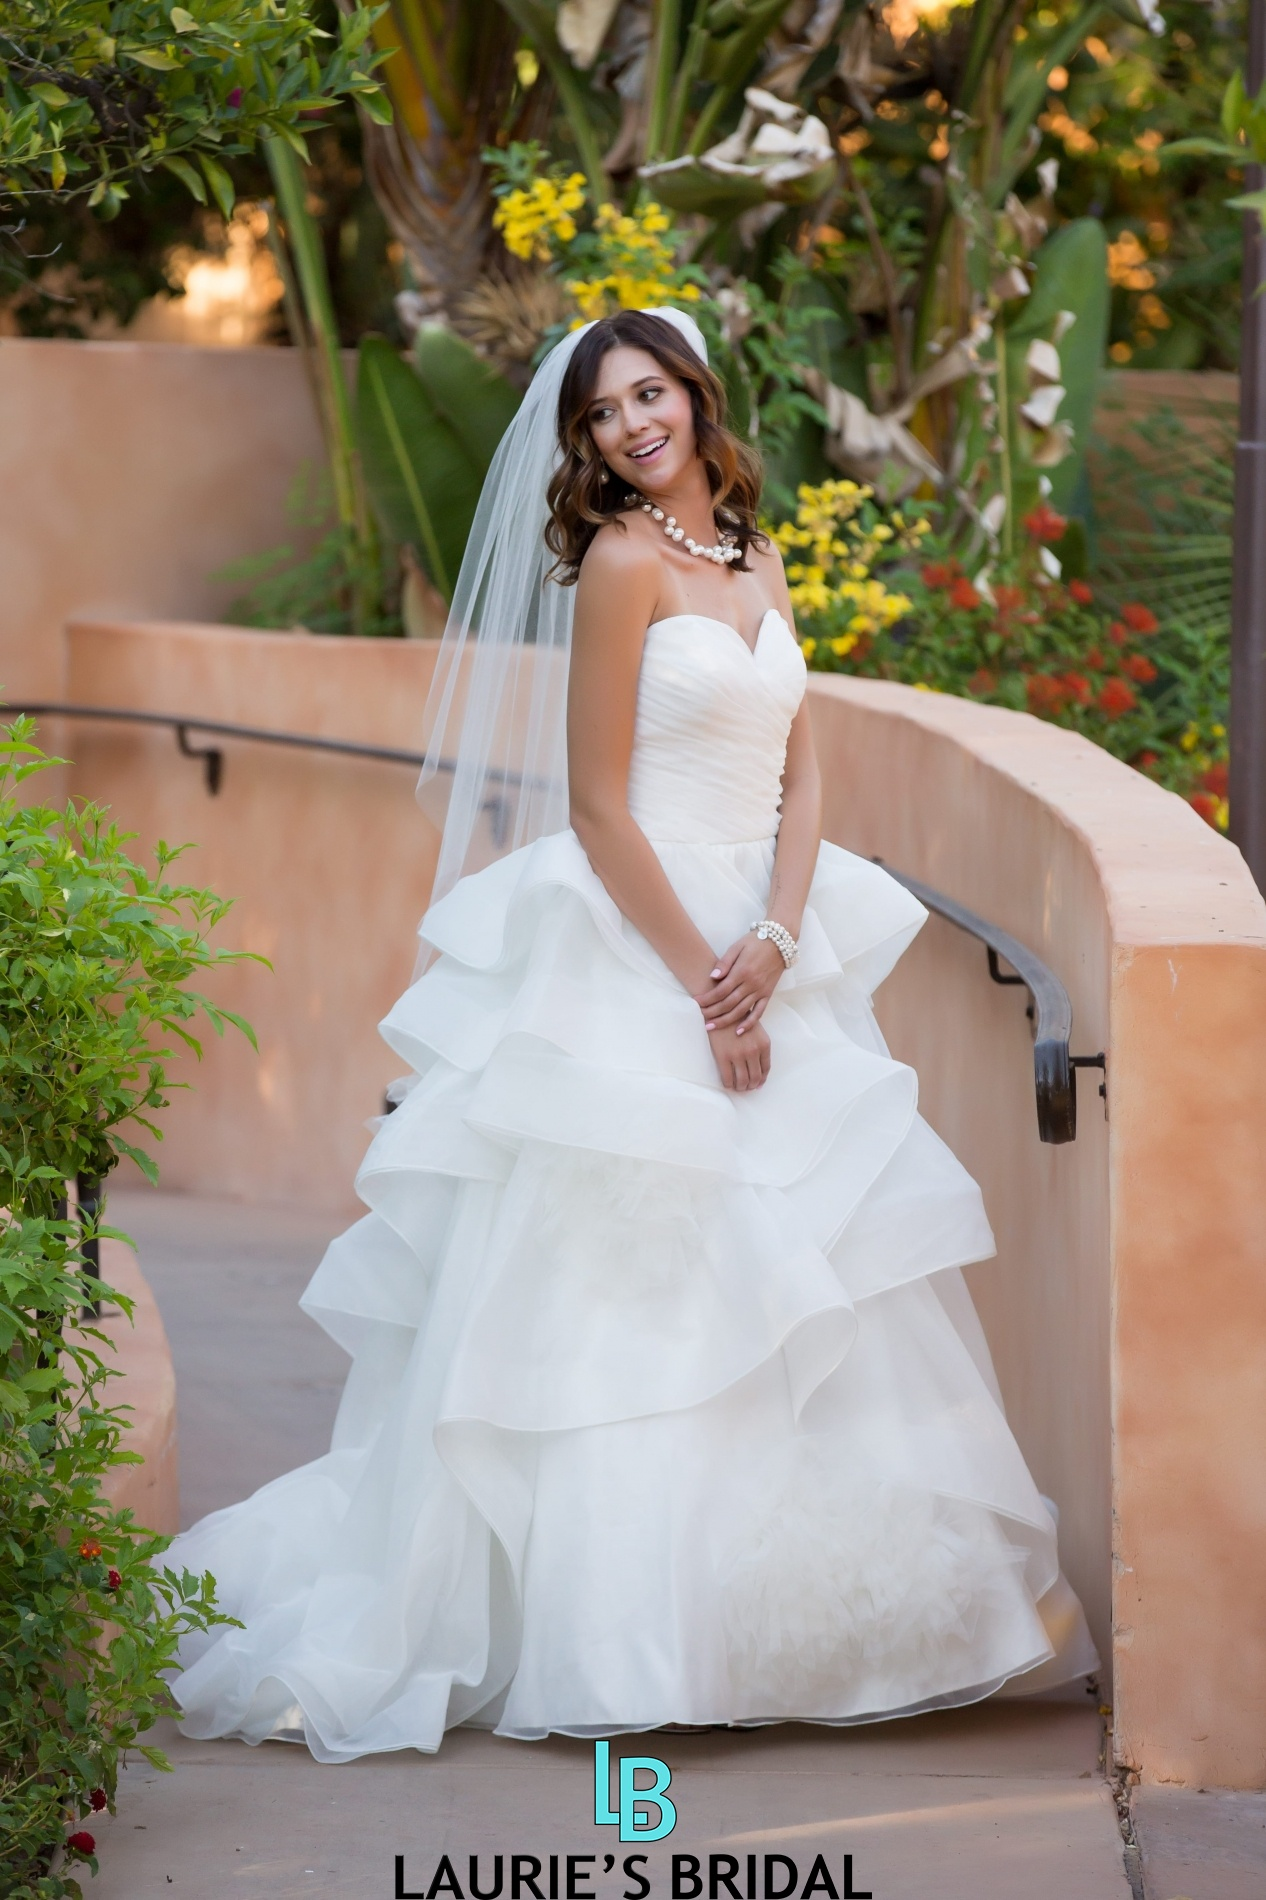 Bridal lauries bridal scottsdale arizona wedding dress shop we can help you too as many of our bridal gown samples are available for you to take home on the same day you come to try on gowns ombrellifo Gallery